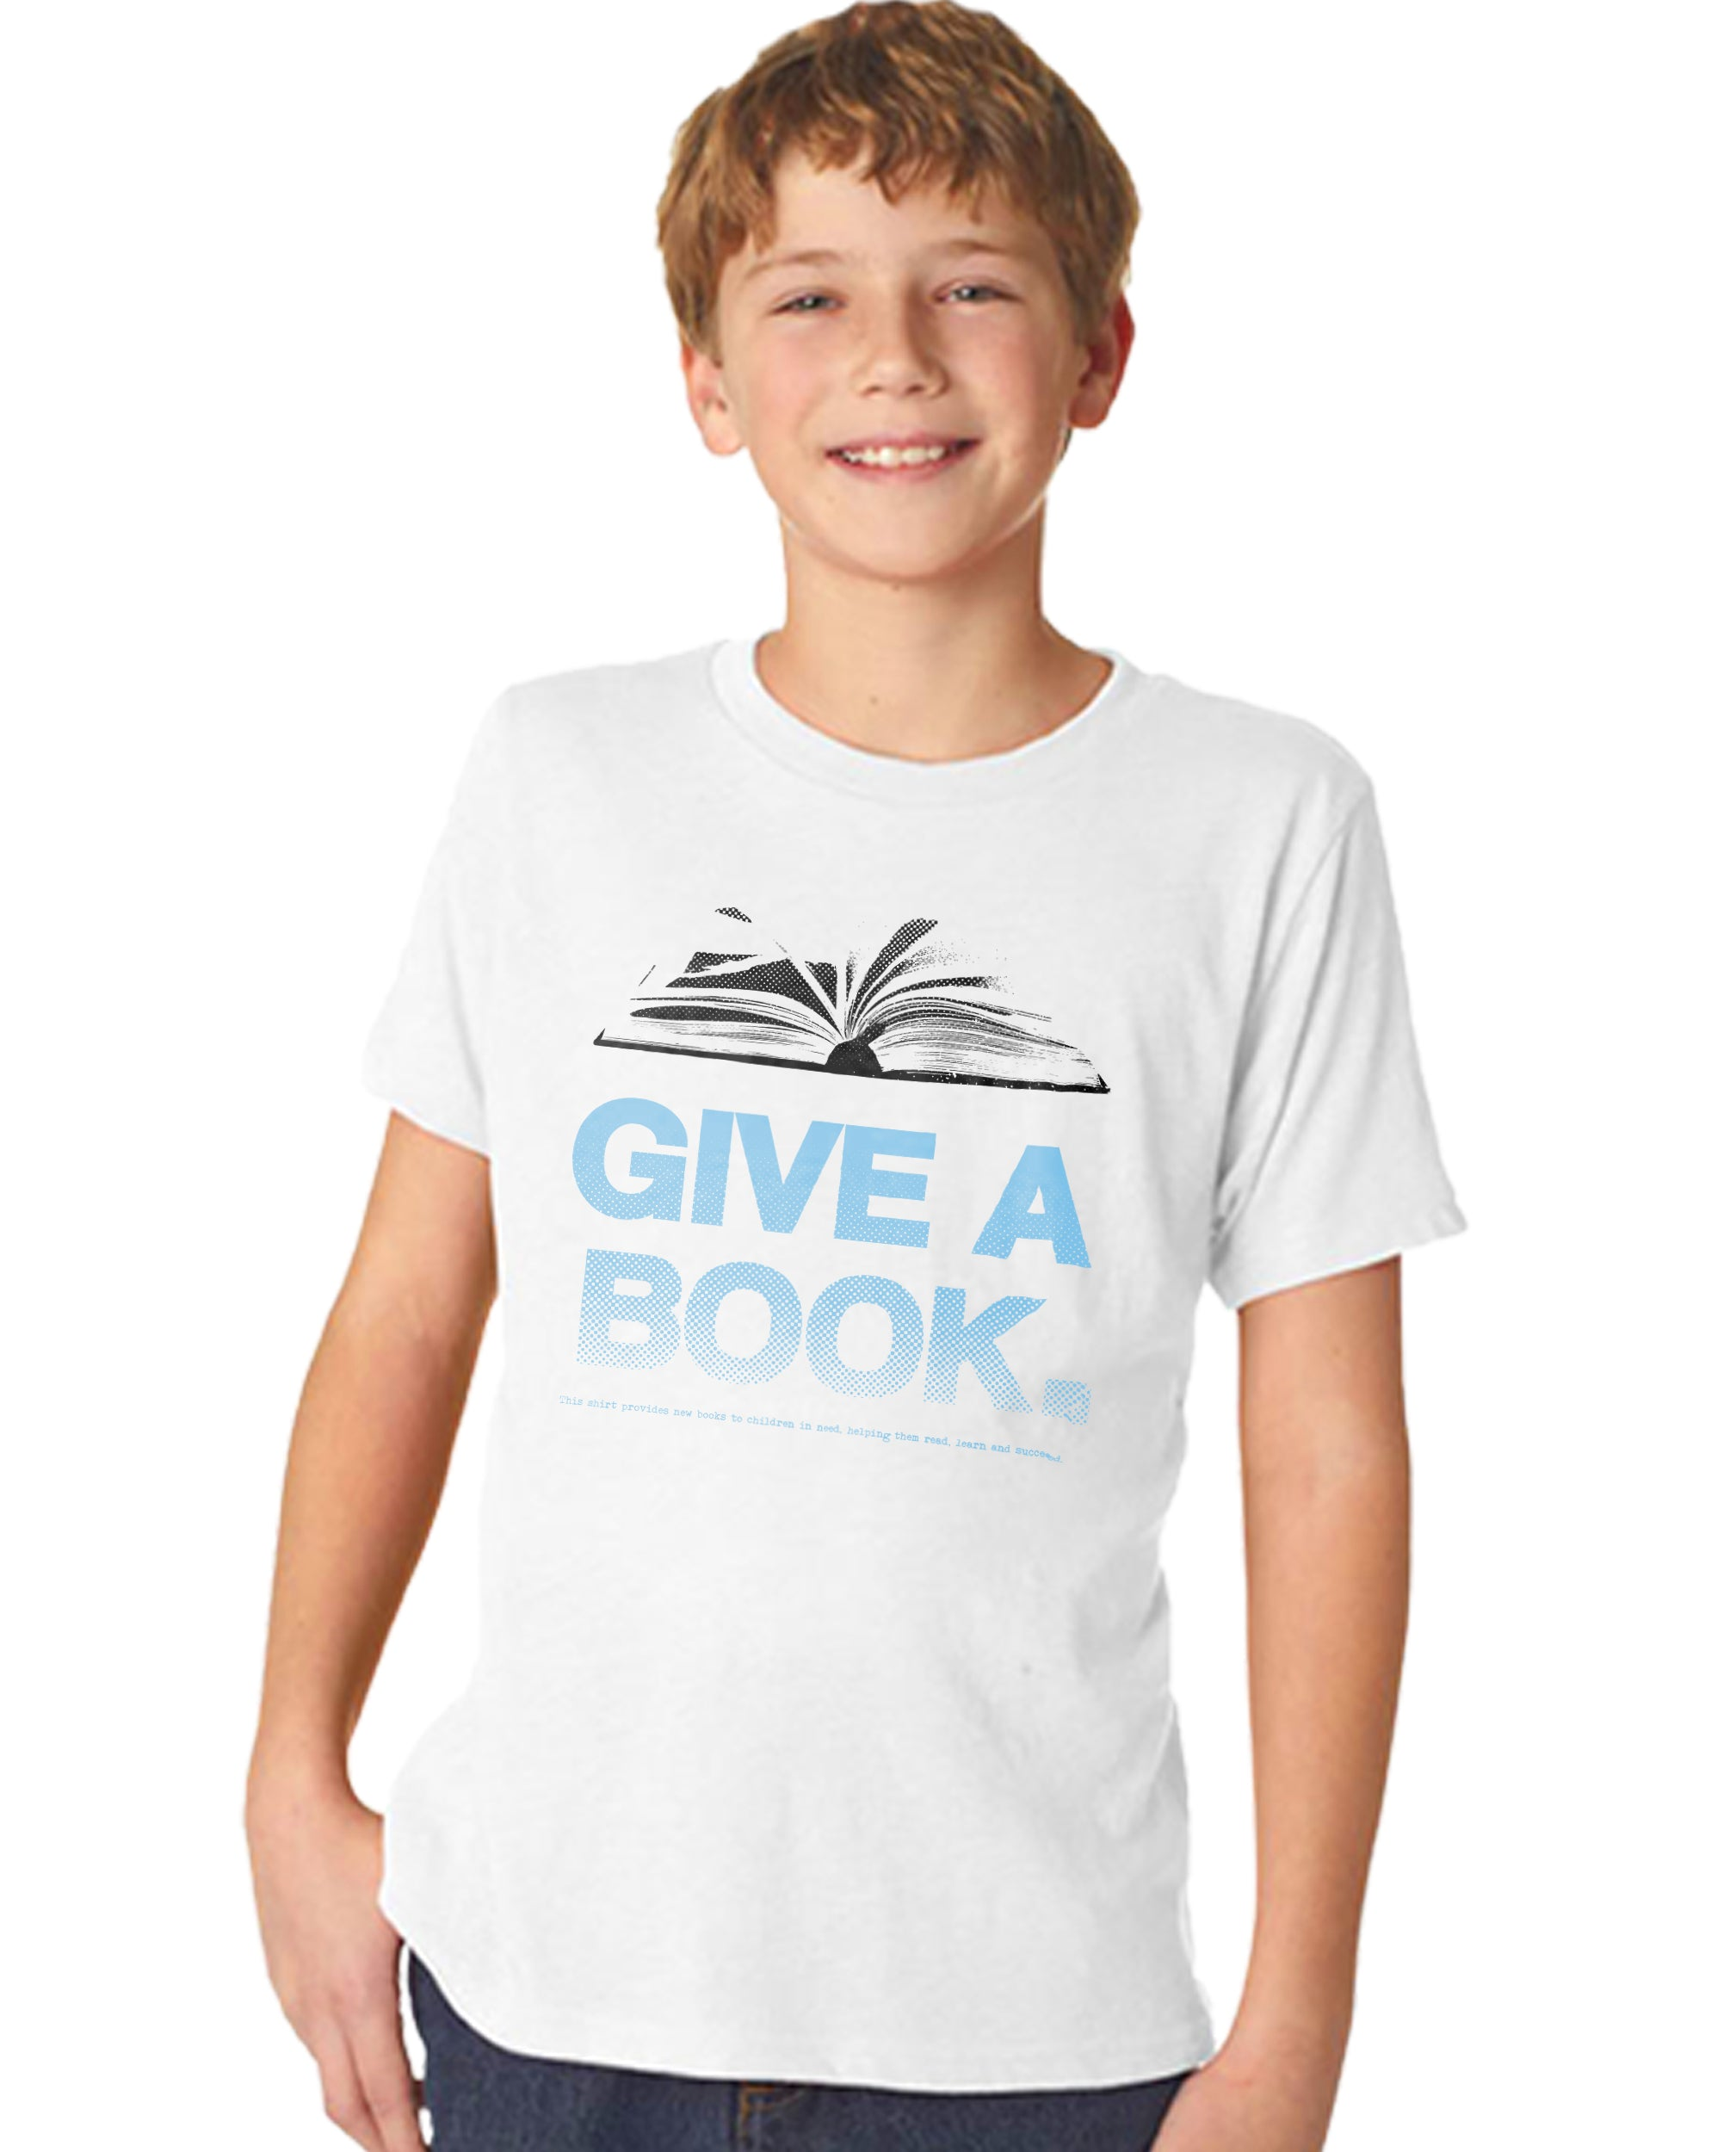 Give A Book Boy's Premium Short Sleeve Crew